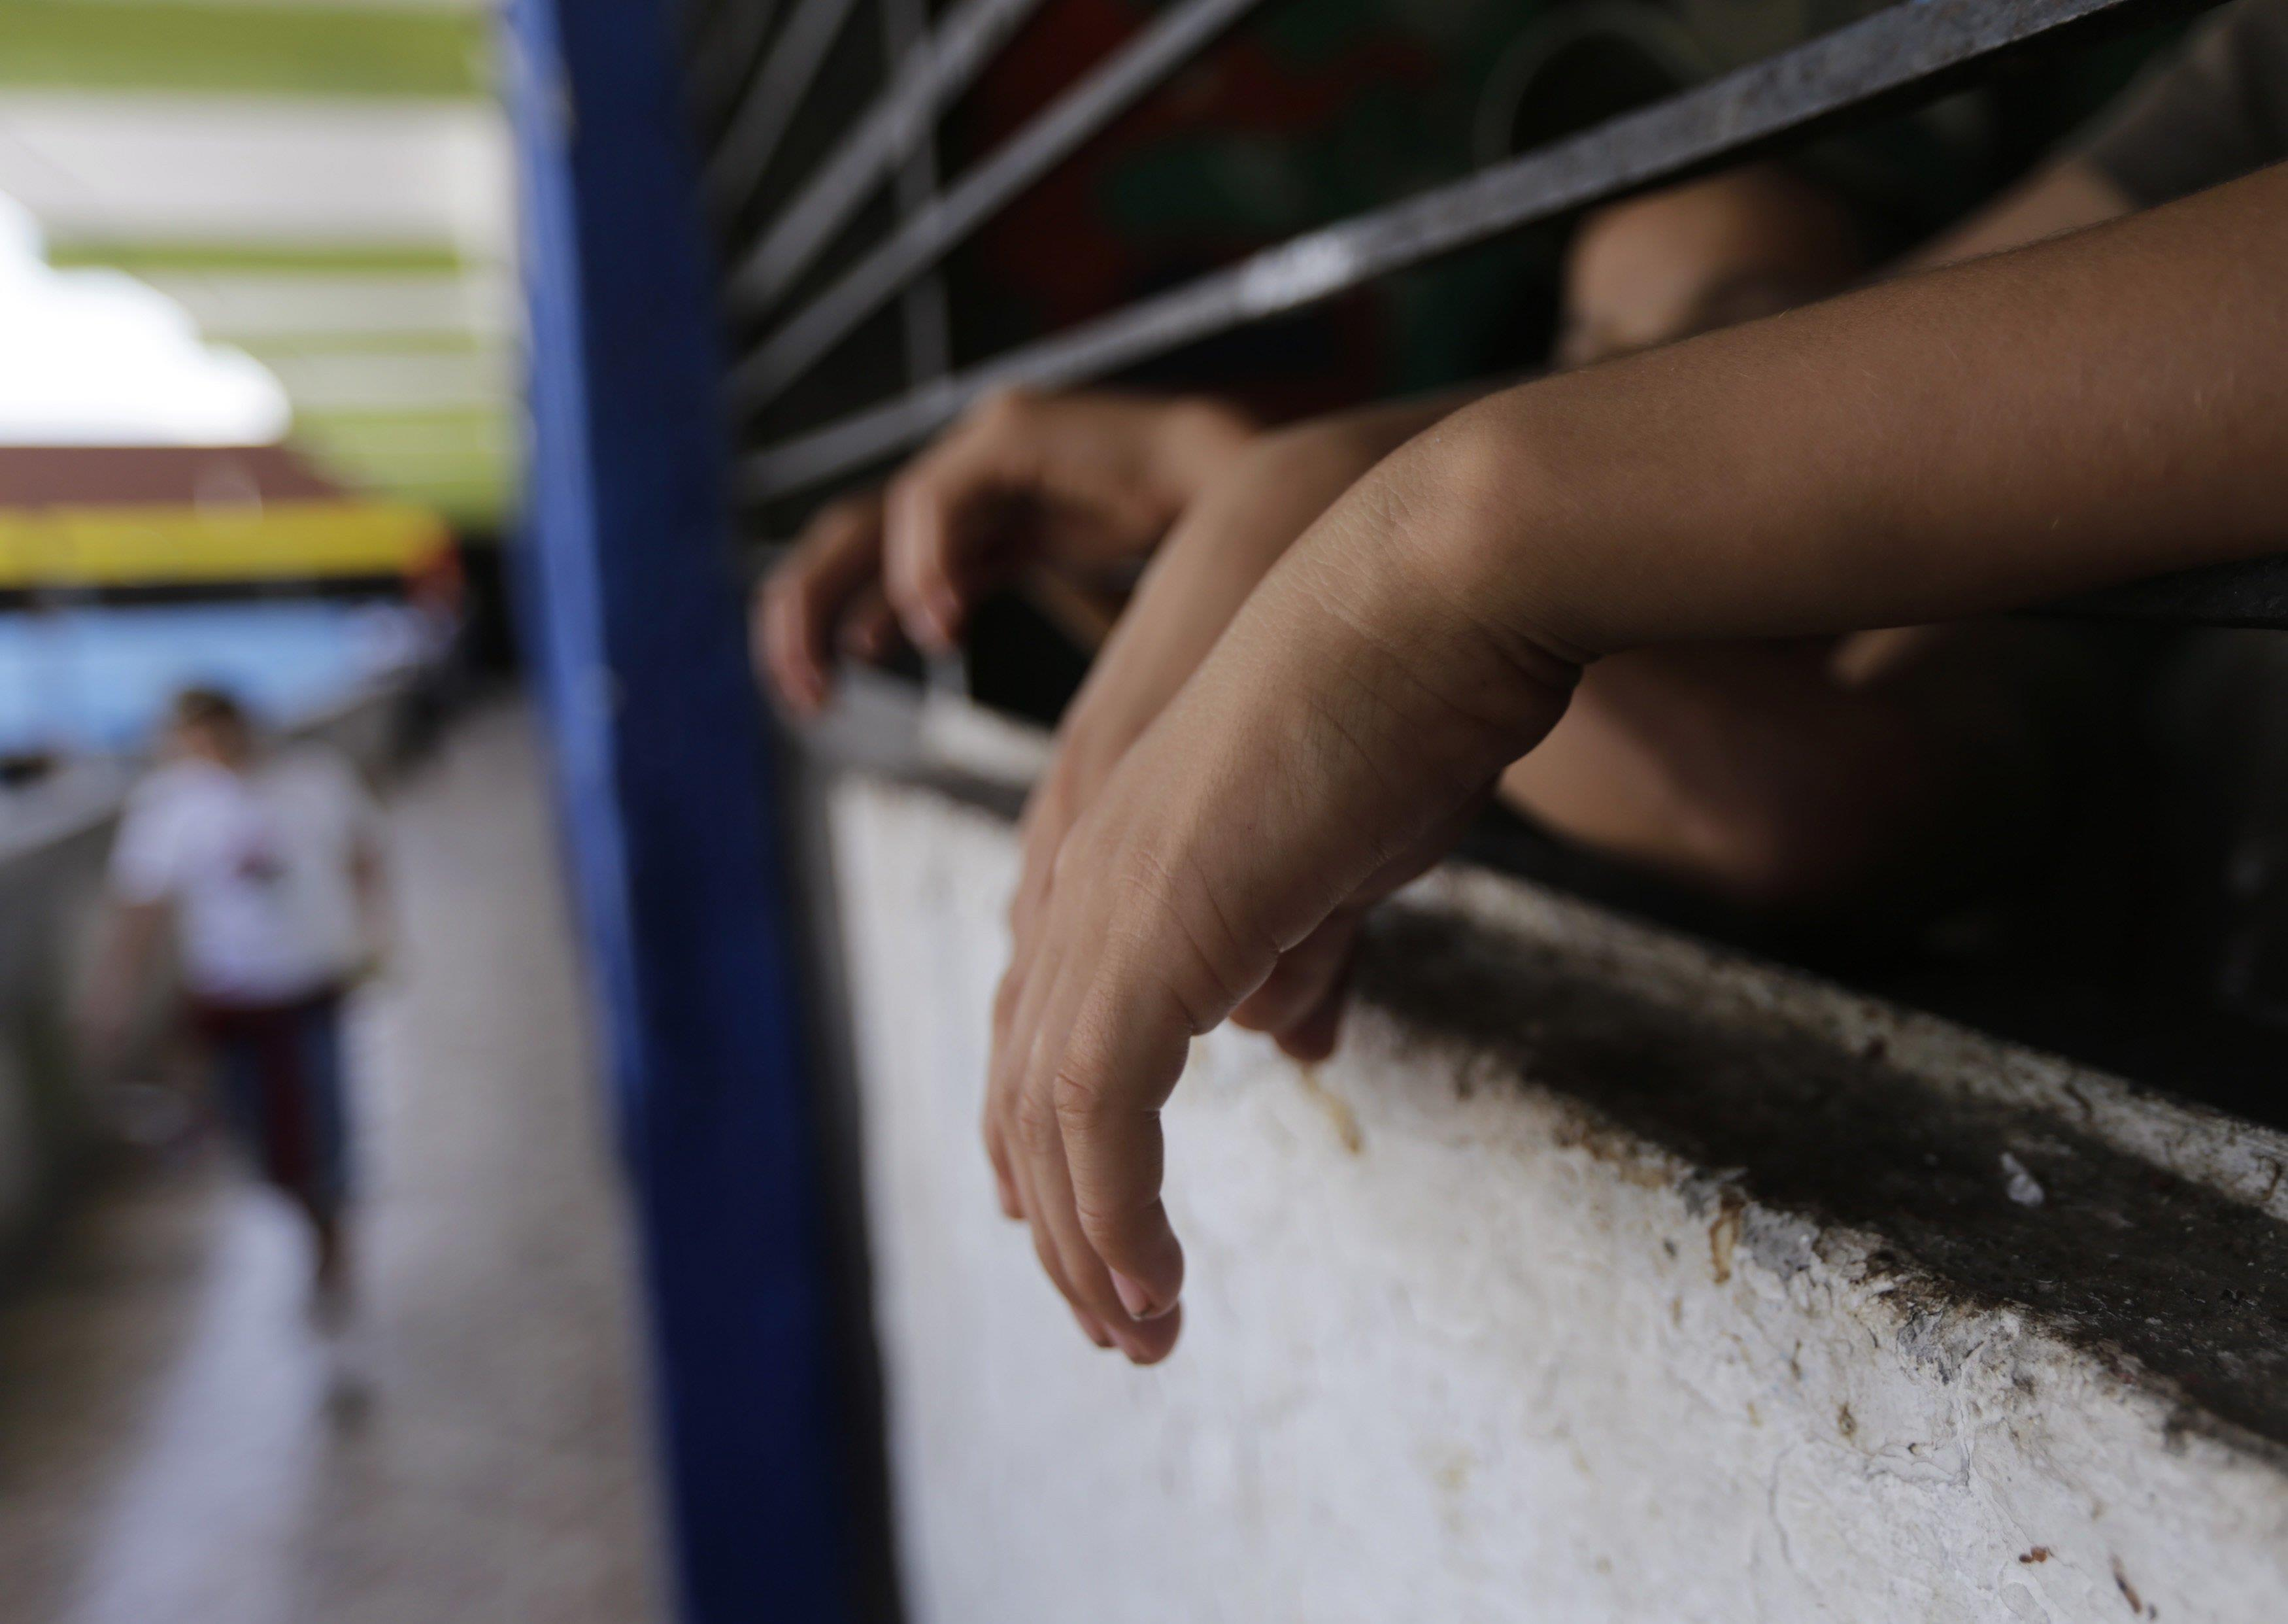 Image: Children place their hands on a barred window inside a home known as